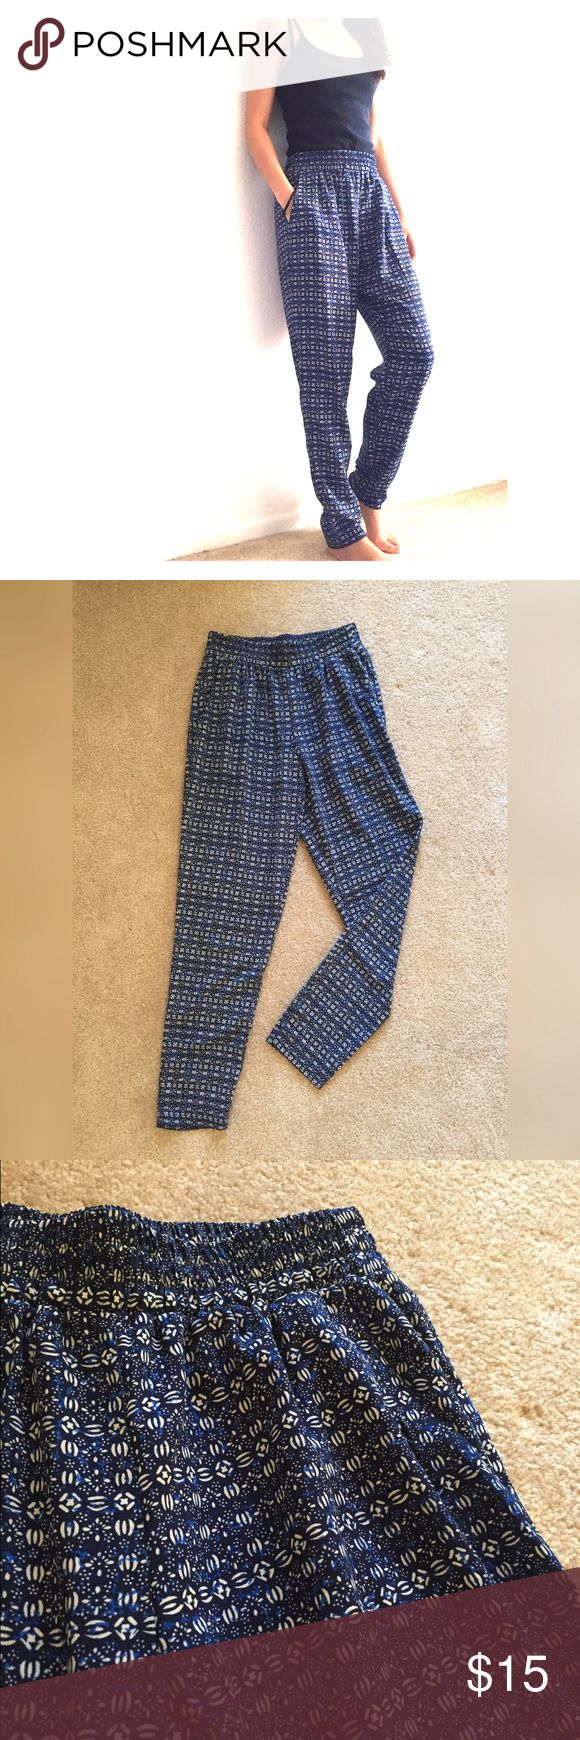 Harlem pants From Nordstrom. Blue and white geometric pattern. Silky material, tapers at the bottom. Lush Pants